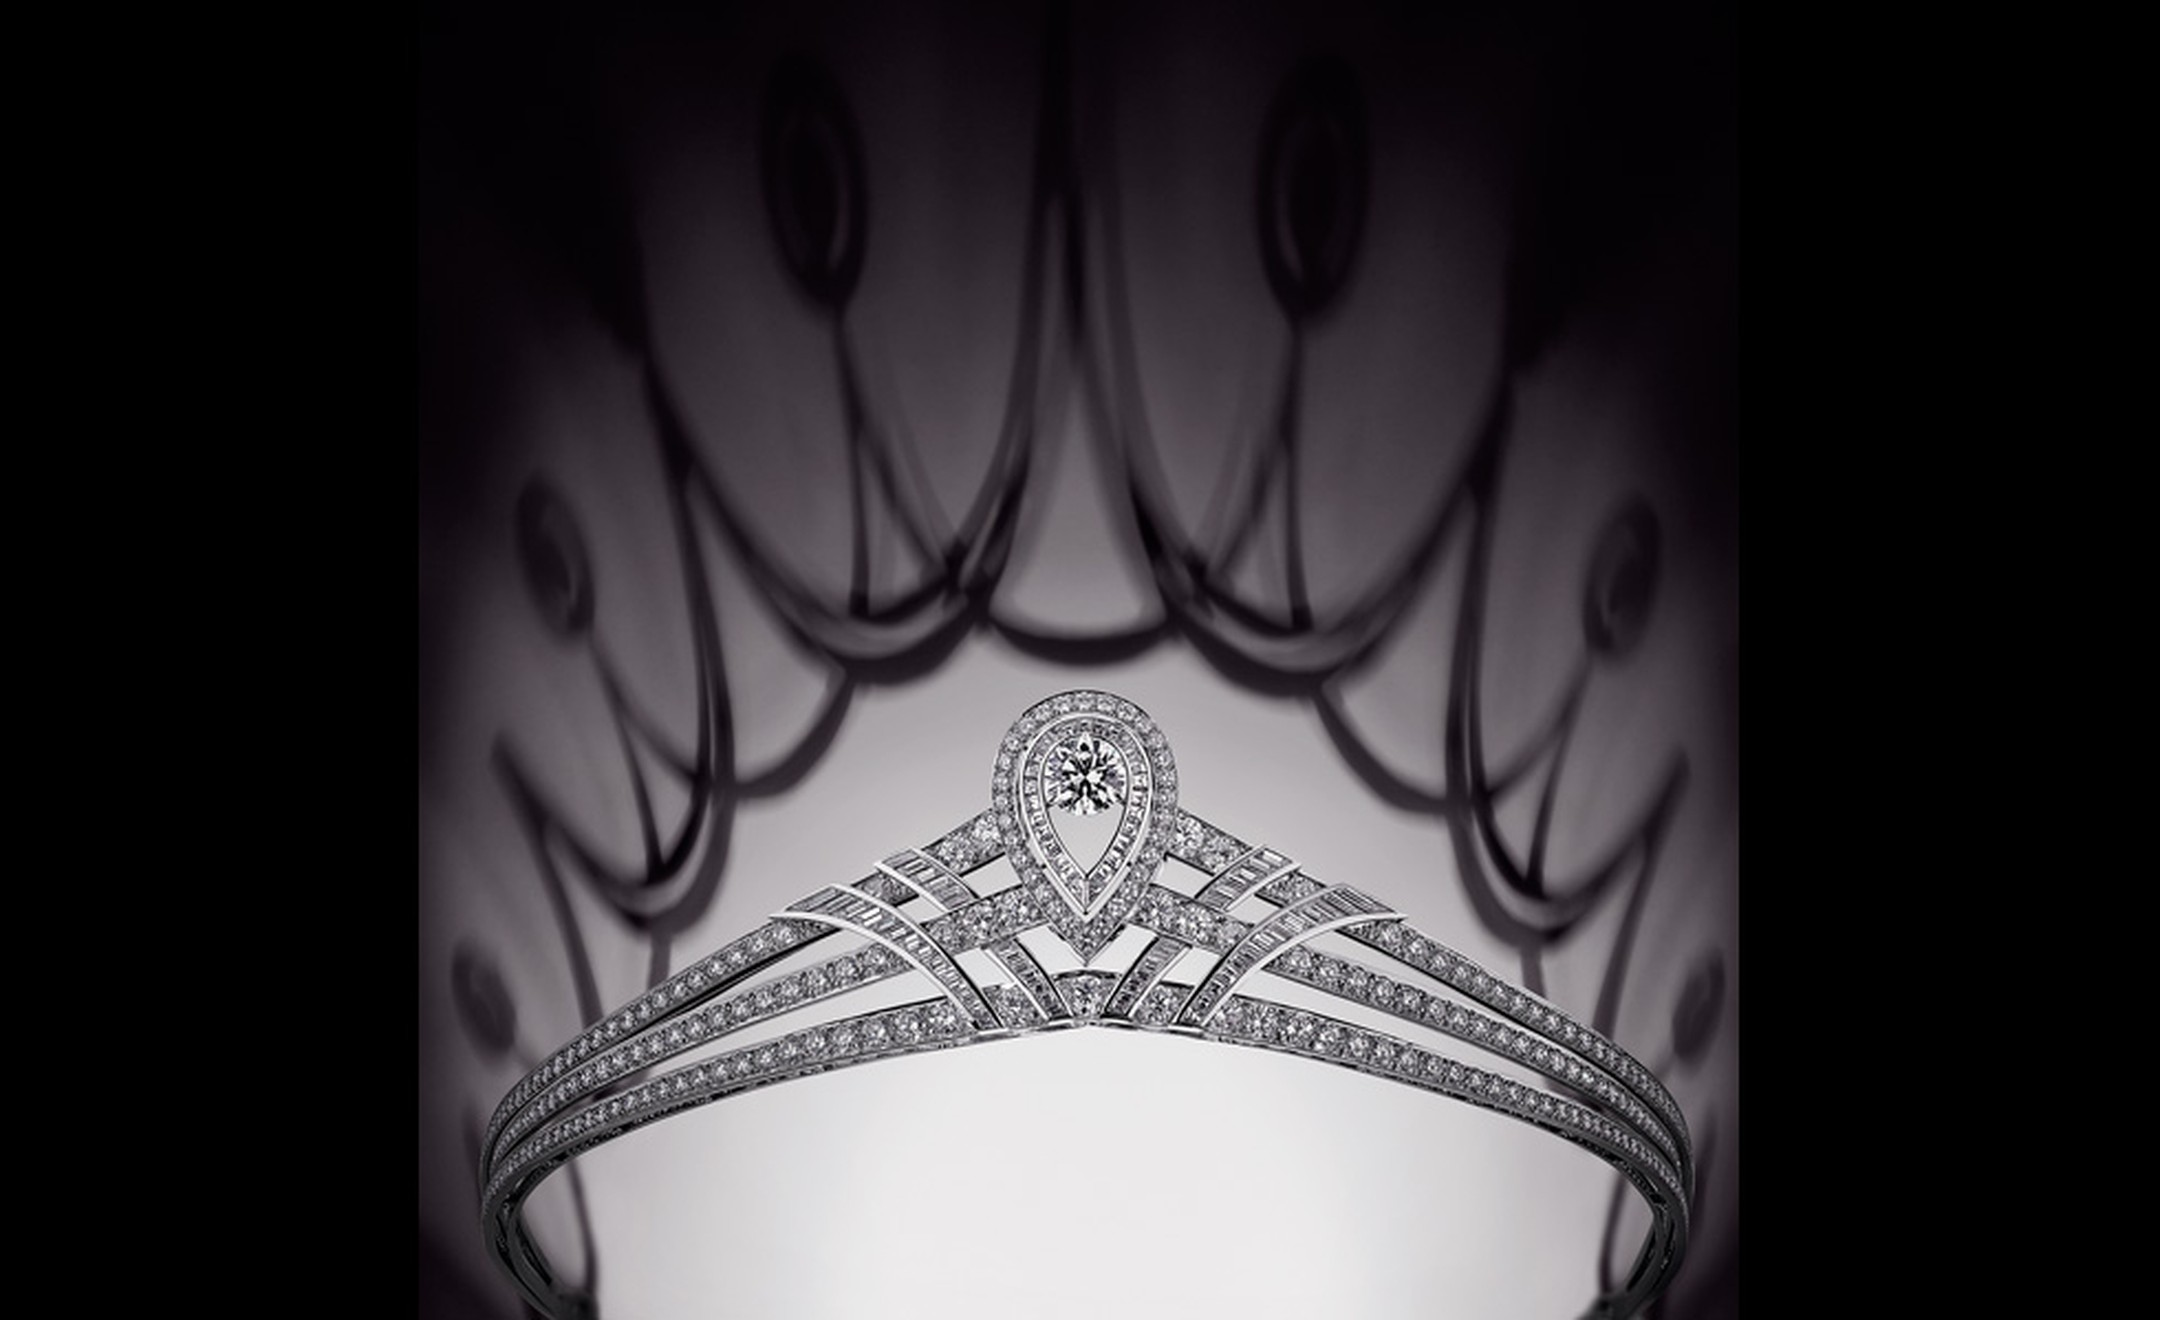 A Chaumet tiara for more formal occasions. Simple, clean lines highlight the central diamond that will shine light on the wearer like a halo.